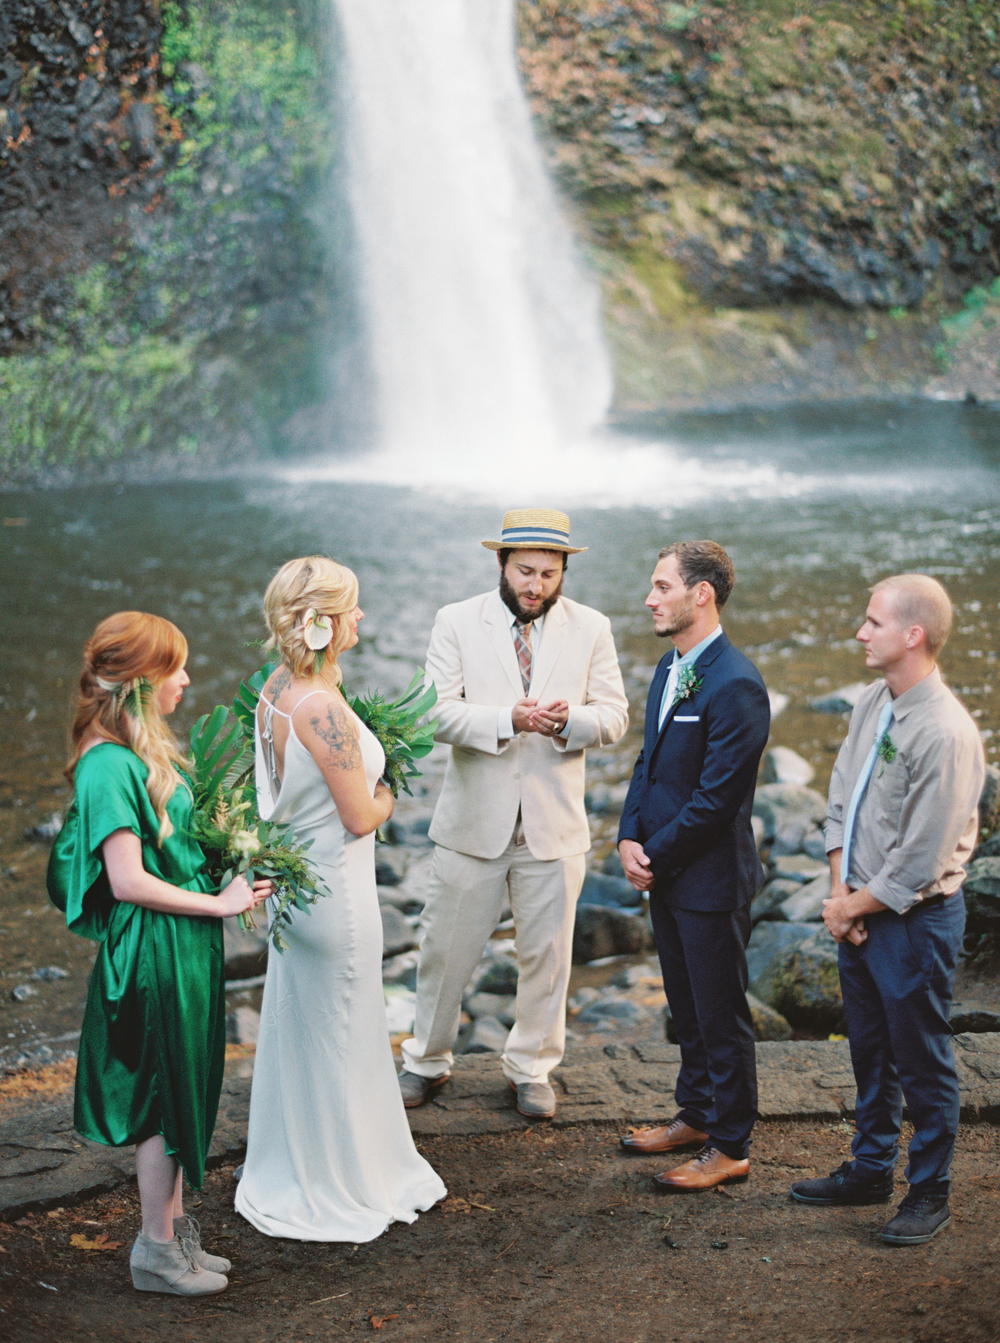 045Outlive+Creative+Tropical+Northwest+Columbia+Gorge+Elopement+Film+Photographer.jpg